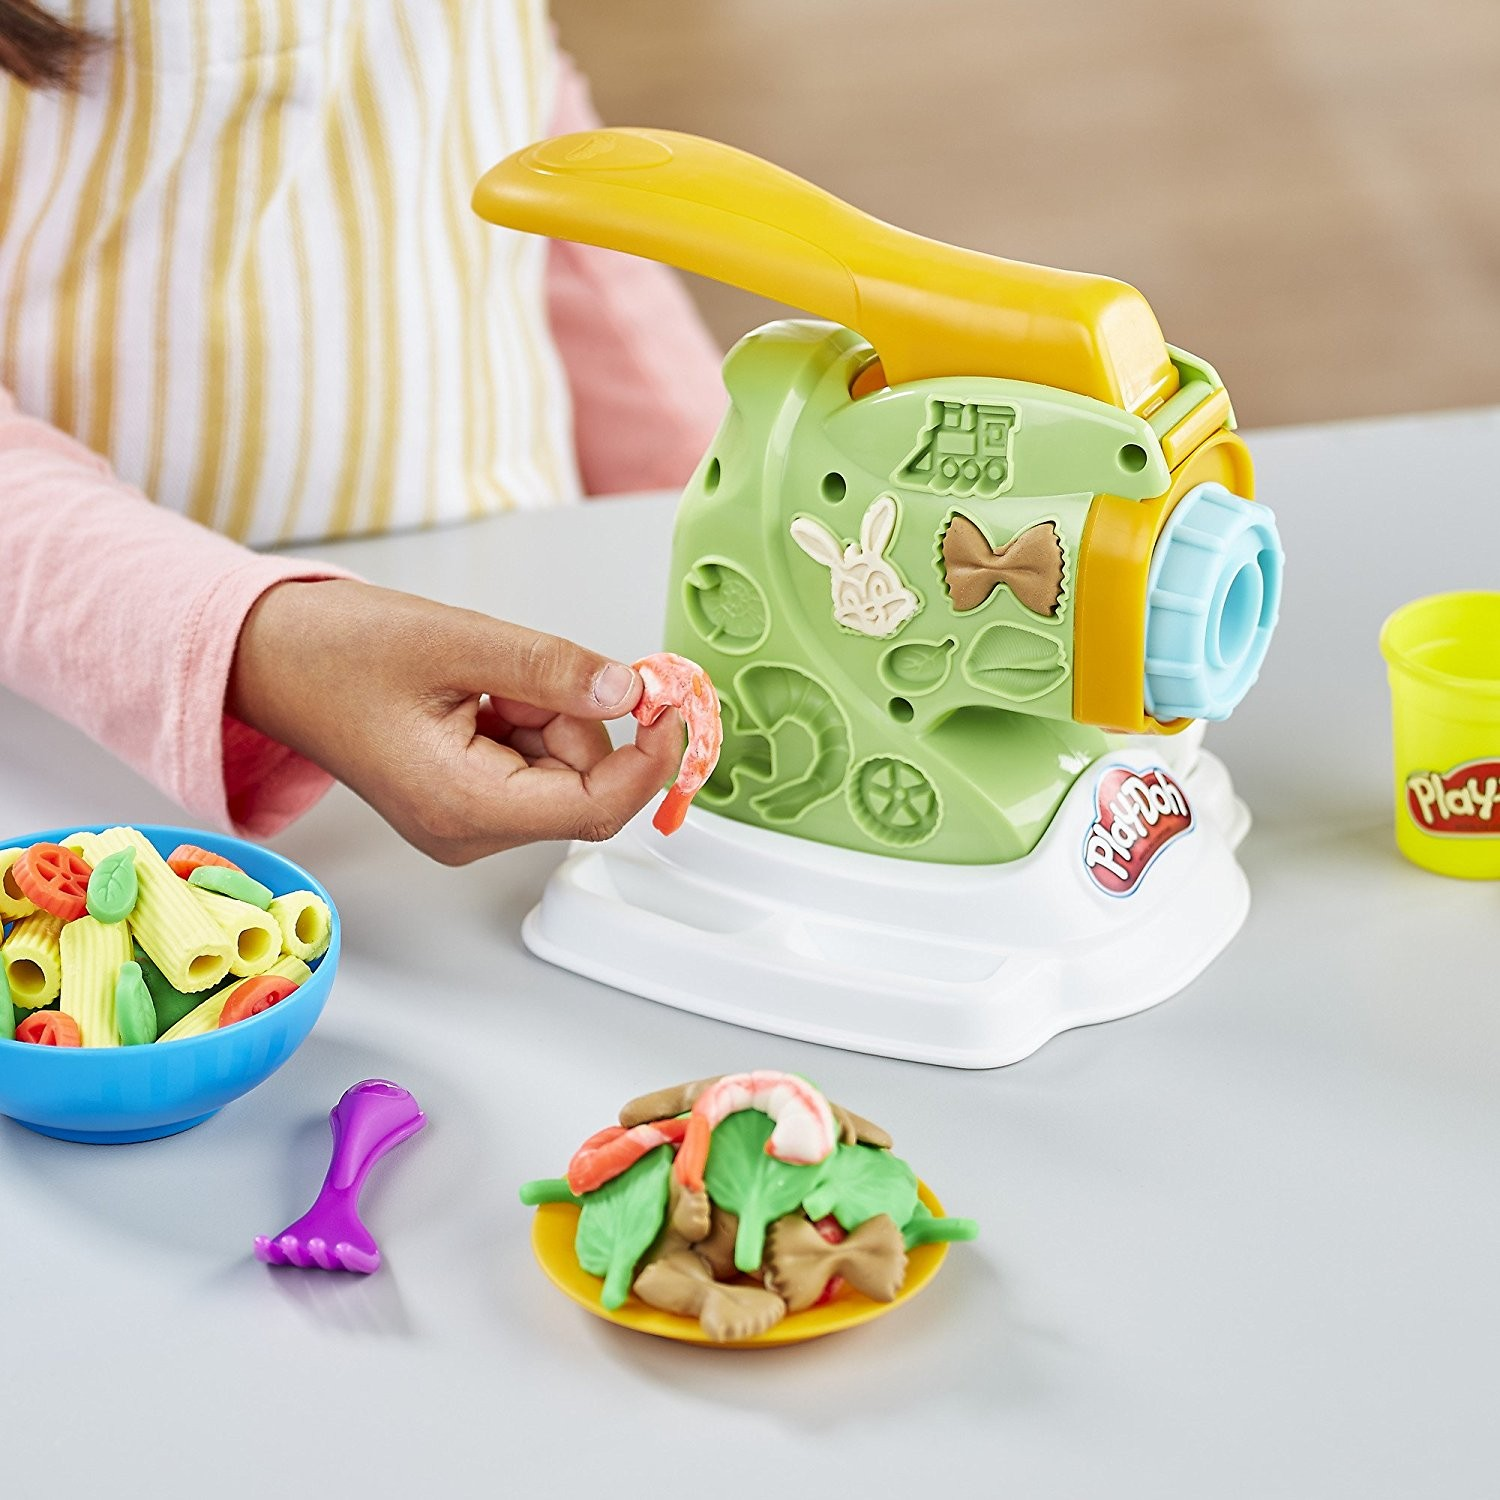 play-doh_-_il_set_per_la_pasta_2